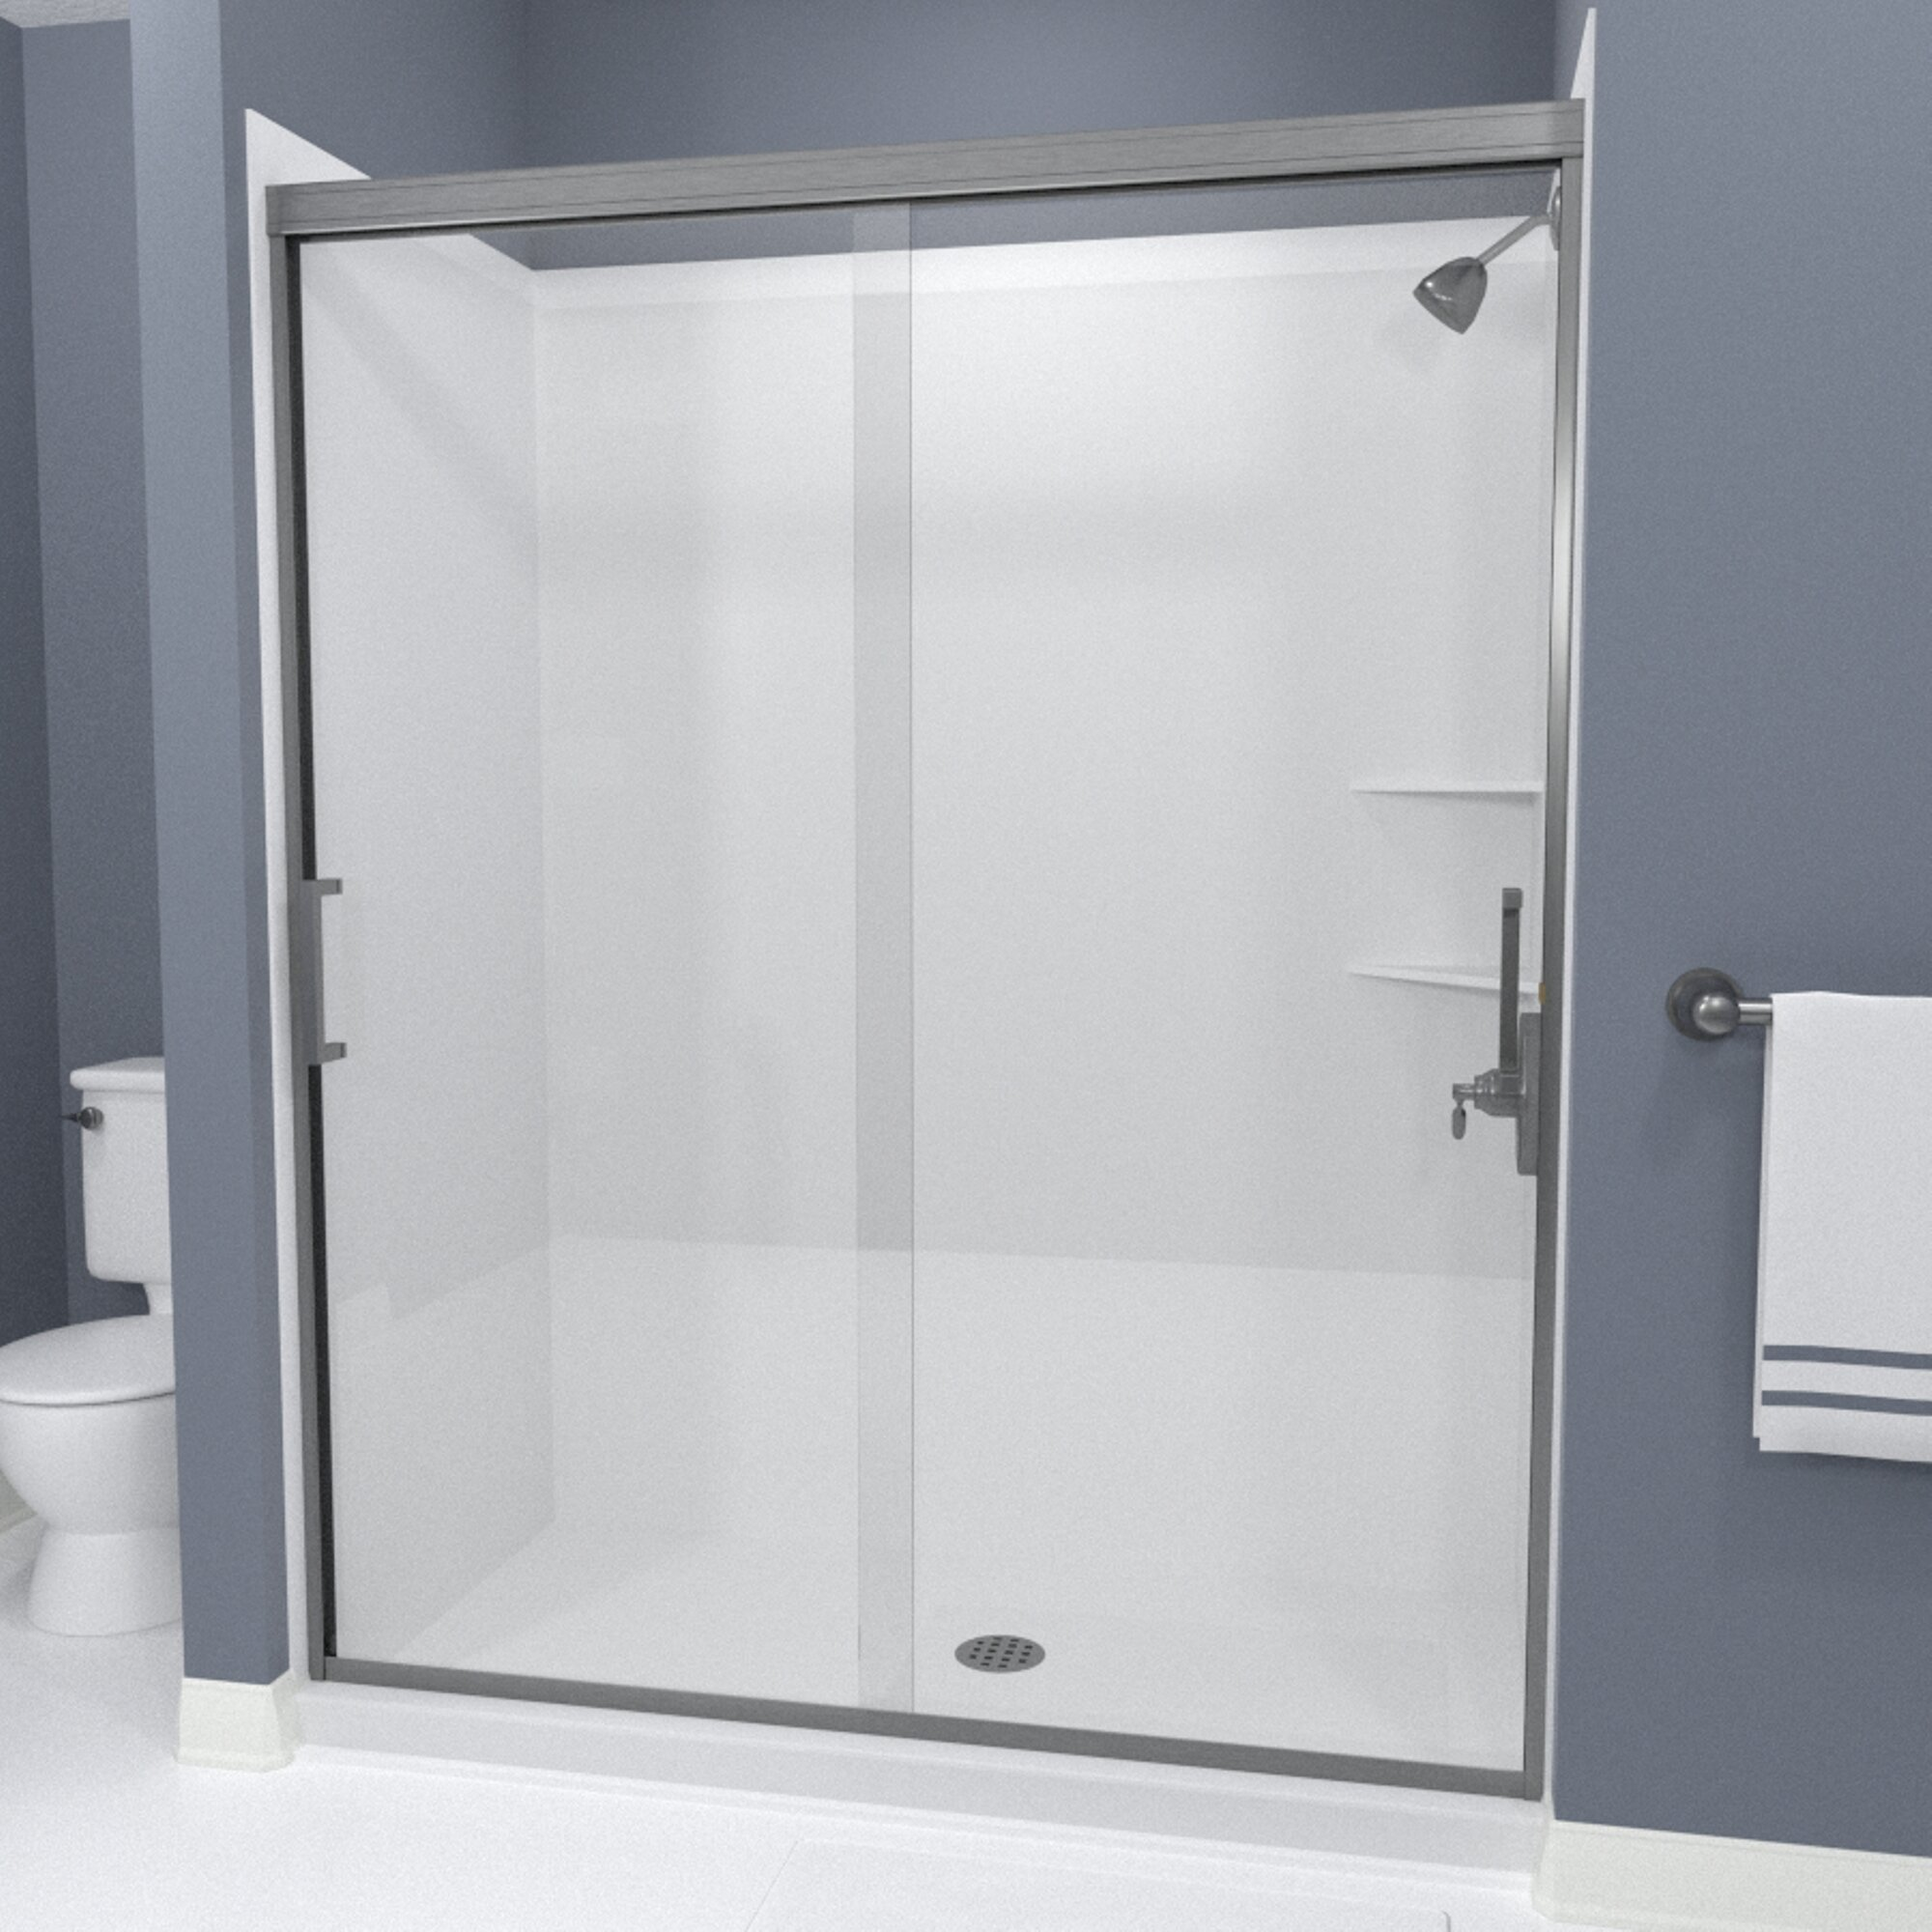 Details About Tombstone 48 X 70 4 Bypass Semi Frameless Shower Door Brushed Nickel